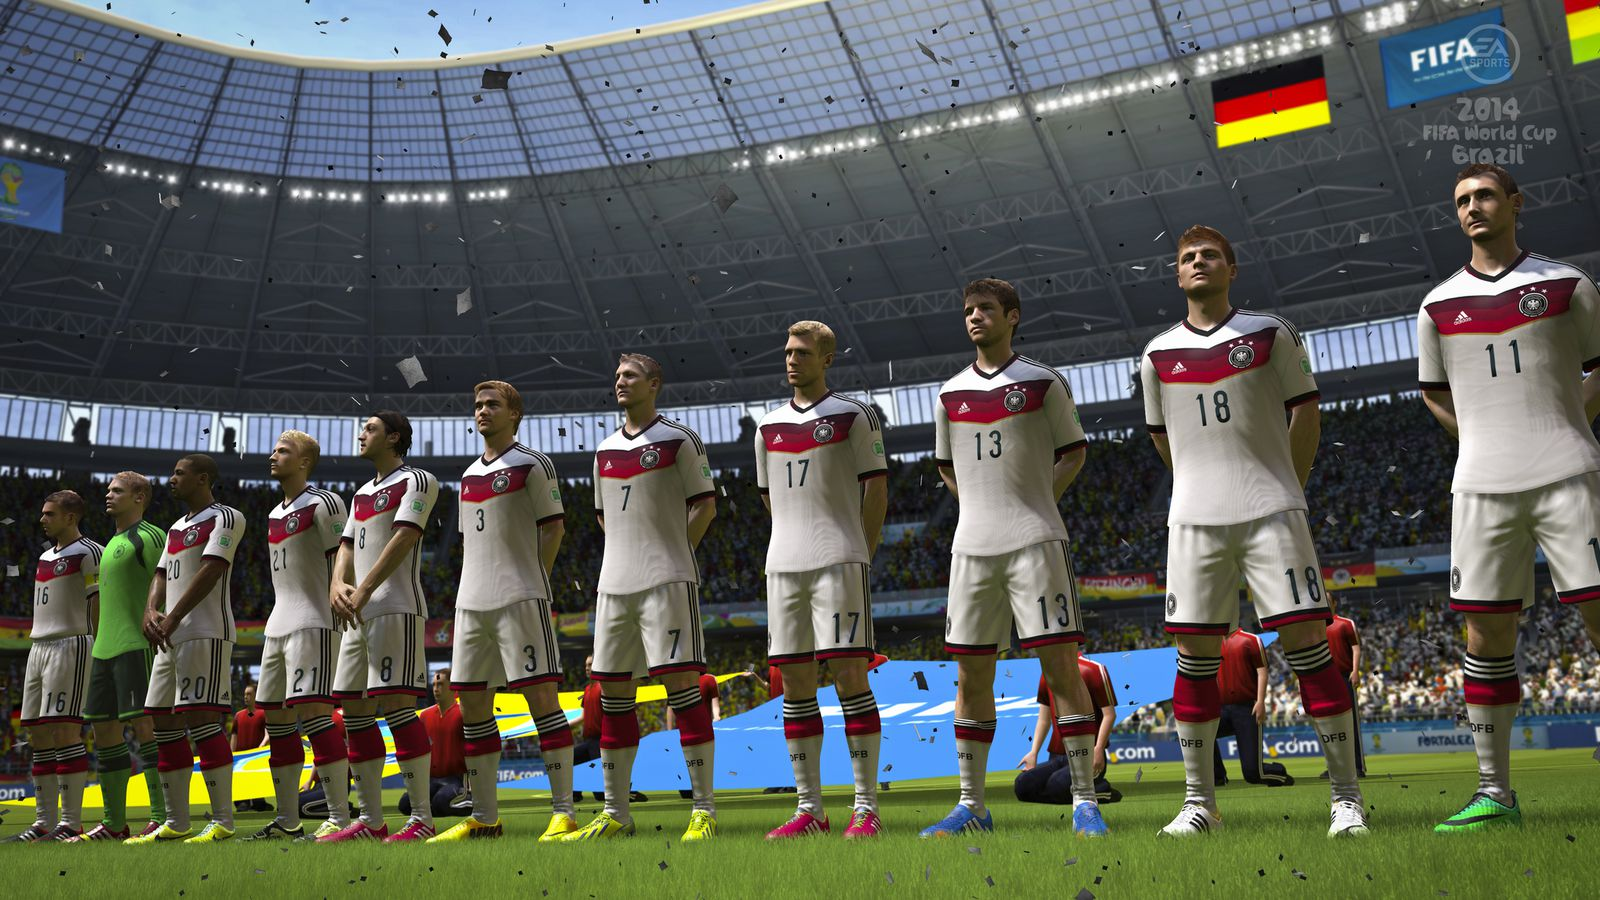 FIFA World Cup 2014 Brazil - All 206 Team Ratings - …